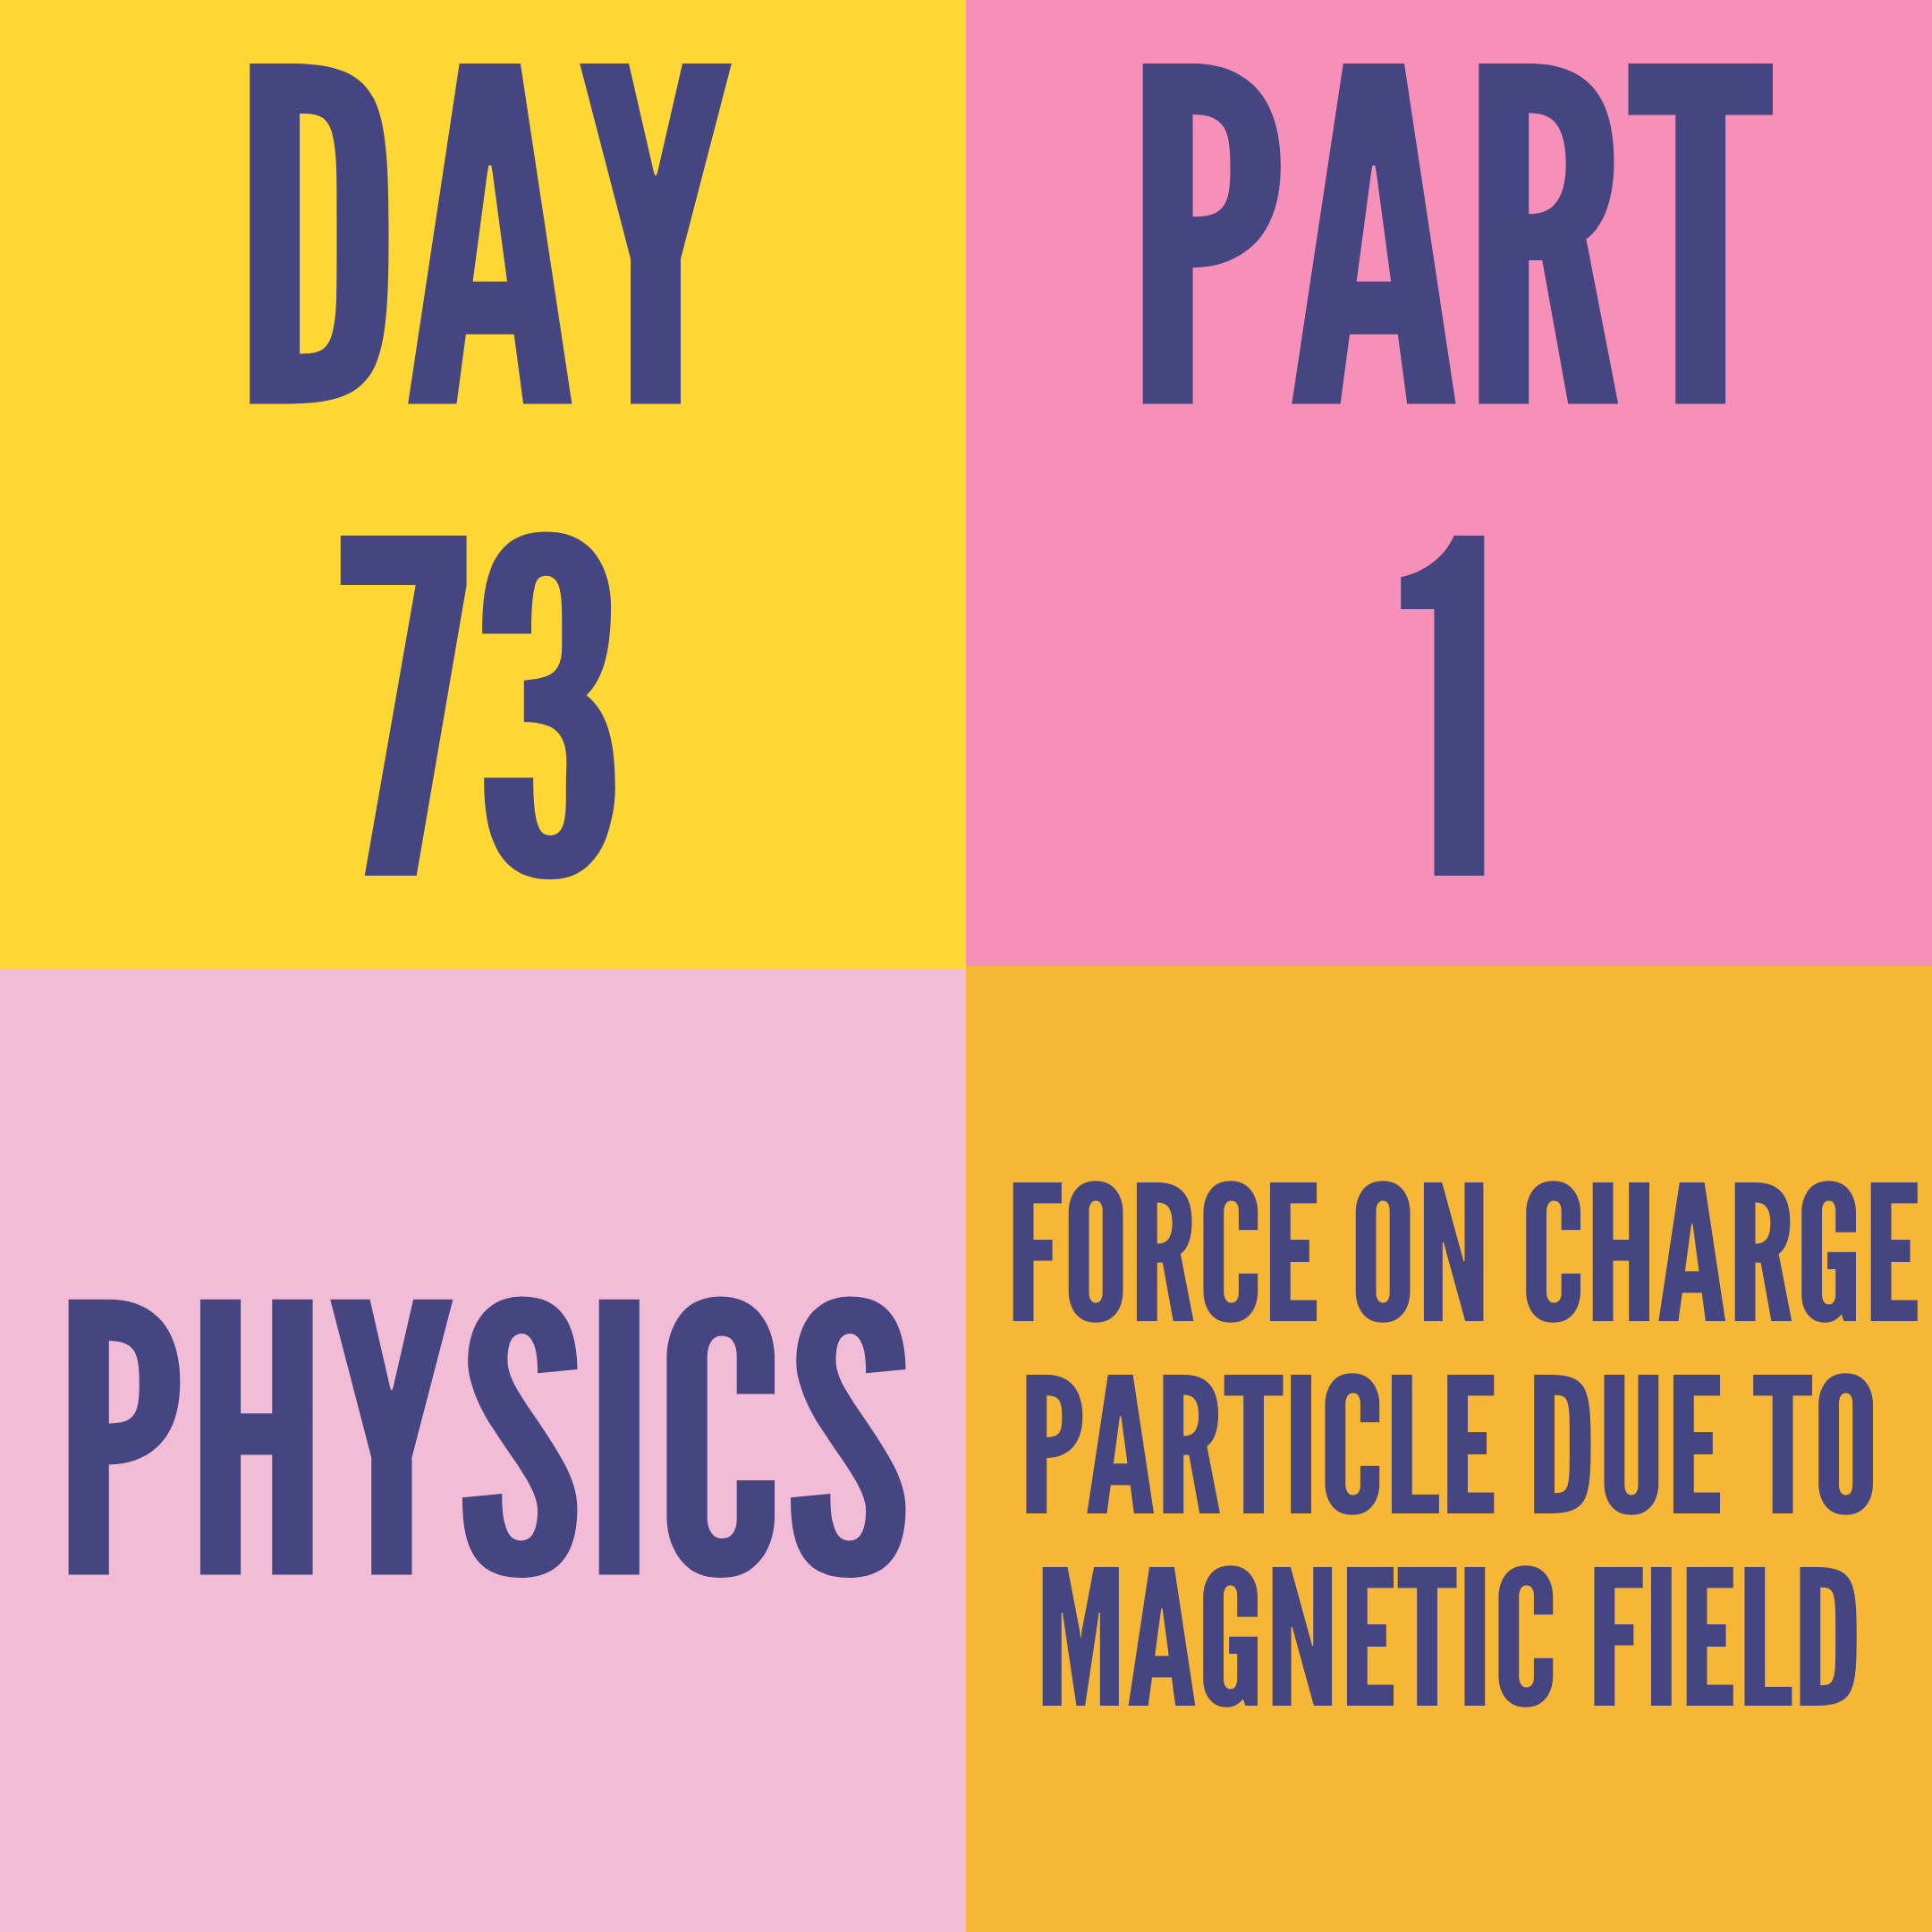 DAY-73 PART-1  FORCE ON CHARGE PARTICLE DUE TO MAGNETIC FIELD